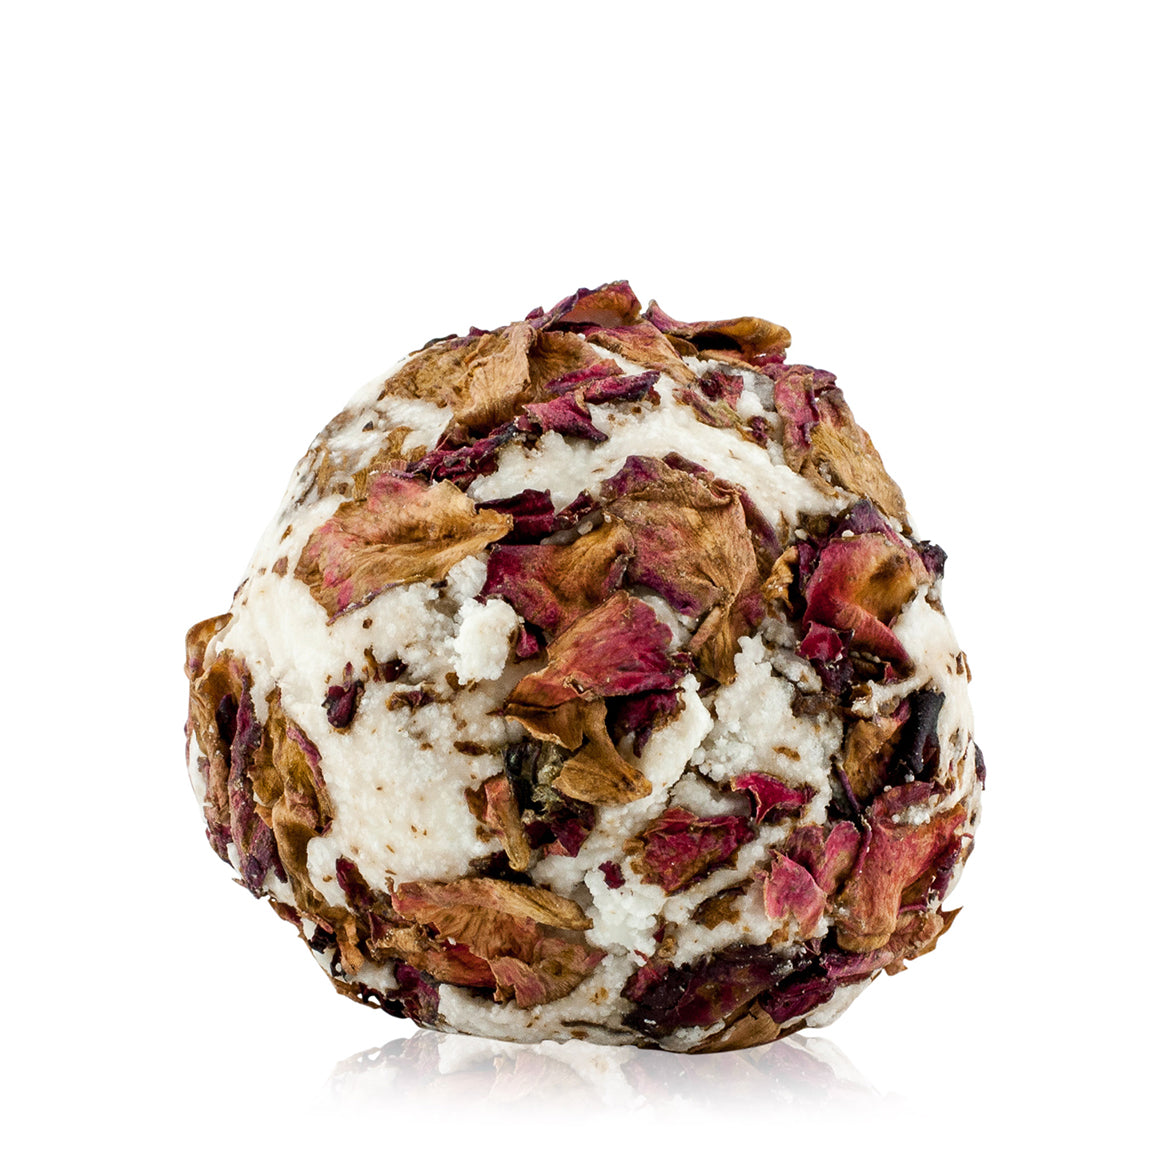 Natural vegan skincare Kaolin clay bath melt ball decorated with rose petals handmade by WiDEYE in Rye.